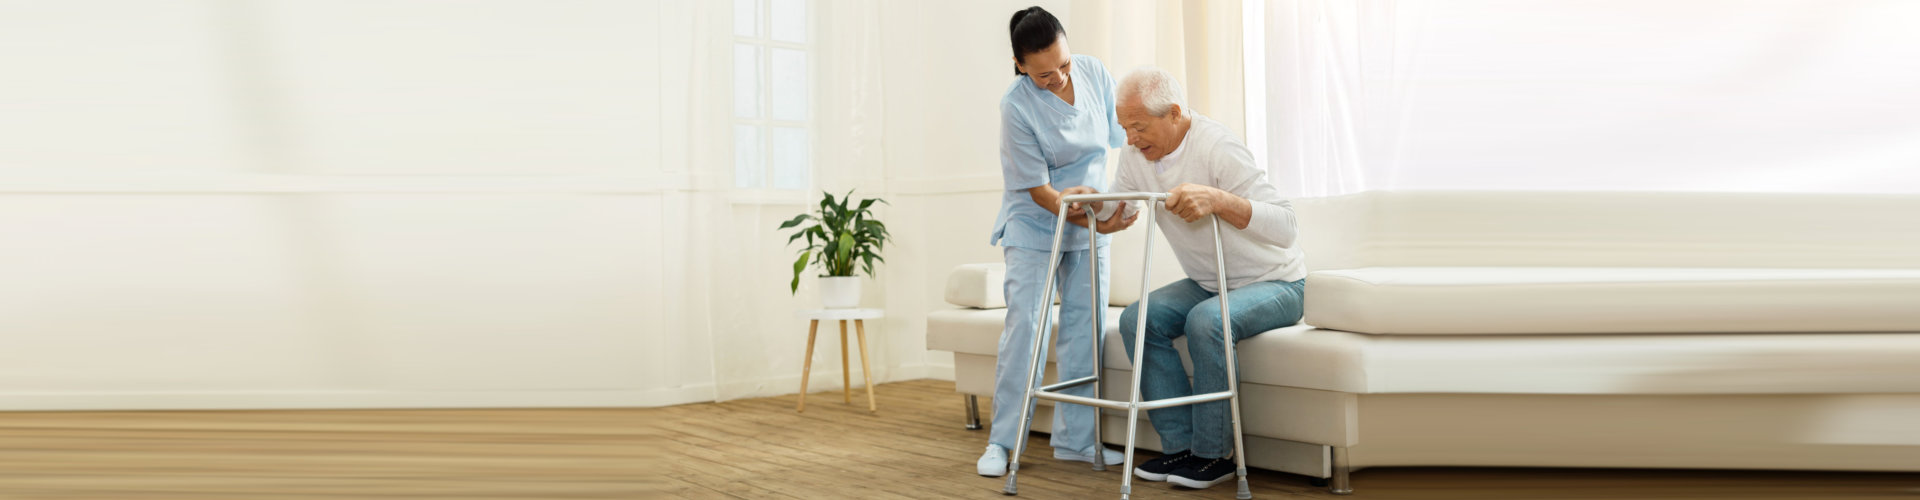 Delighted positive cheerful caregiver smiling and helping her patient to stand up while being near him